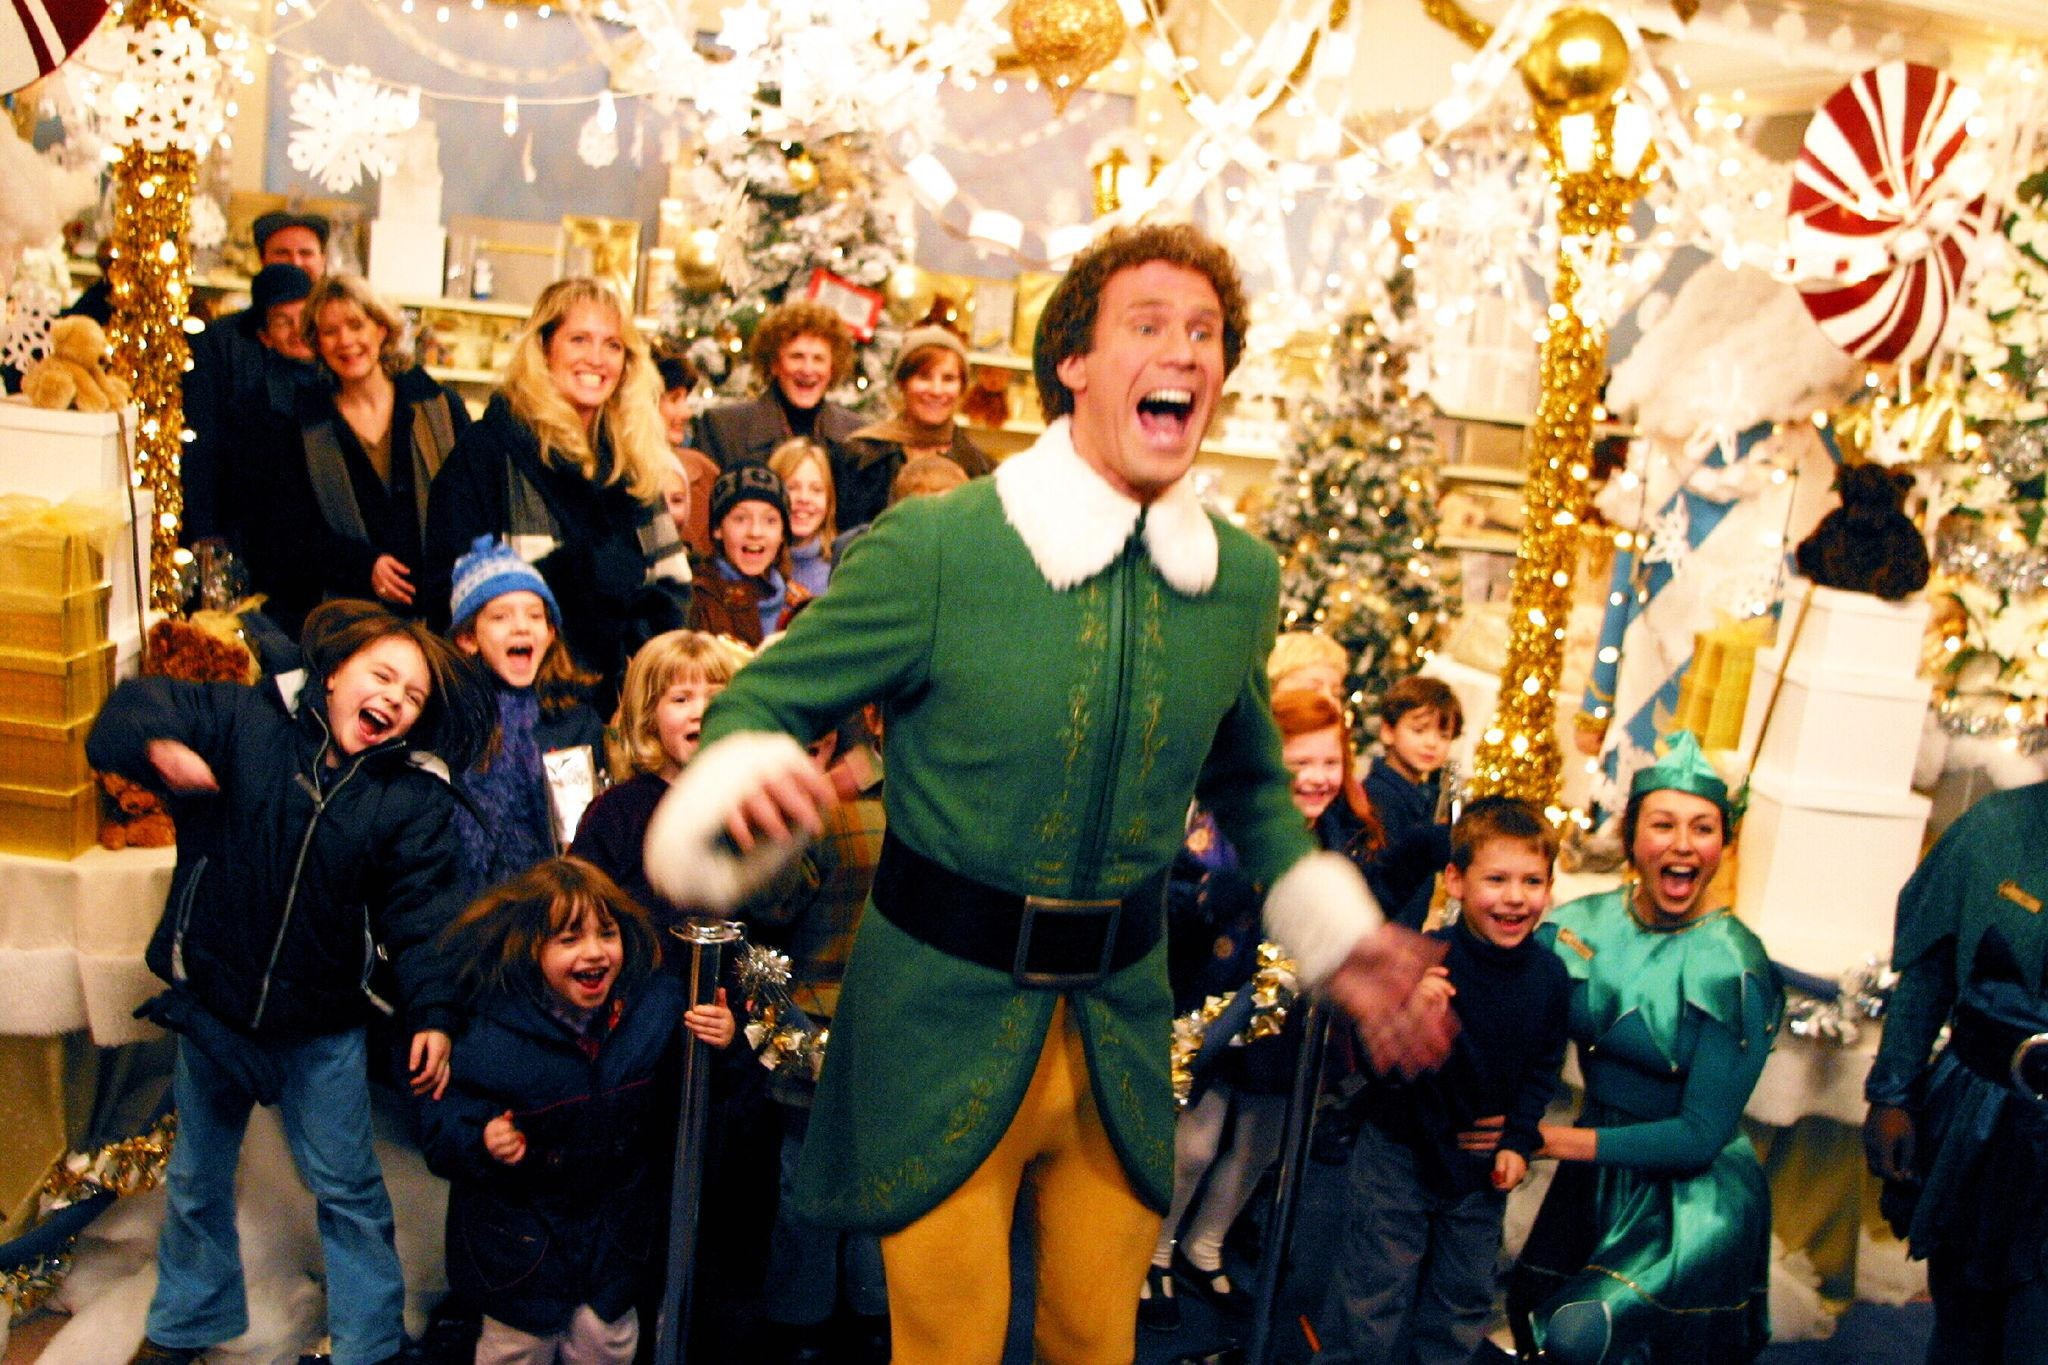 Definitive Proof Buddy the Elf From 'Elf' Encompasses the 12 ...